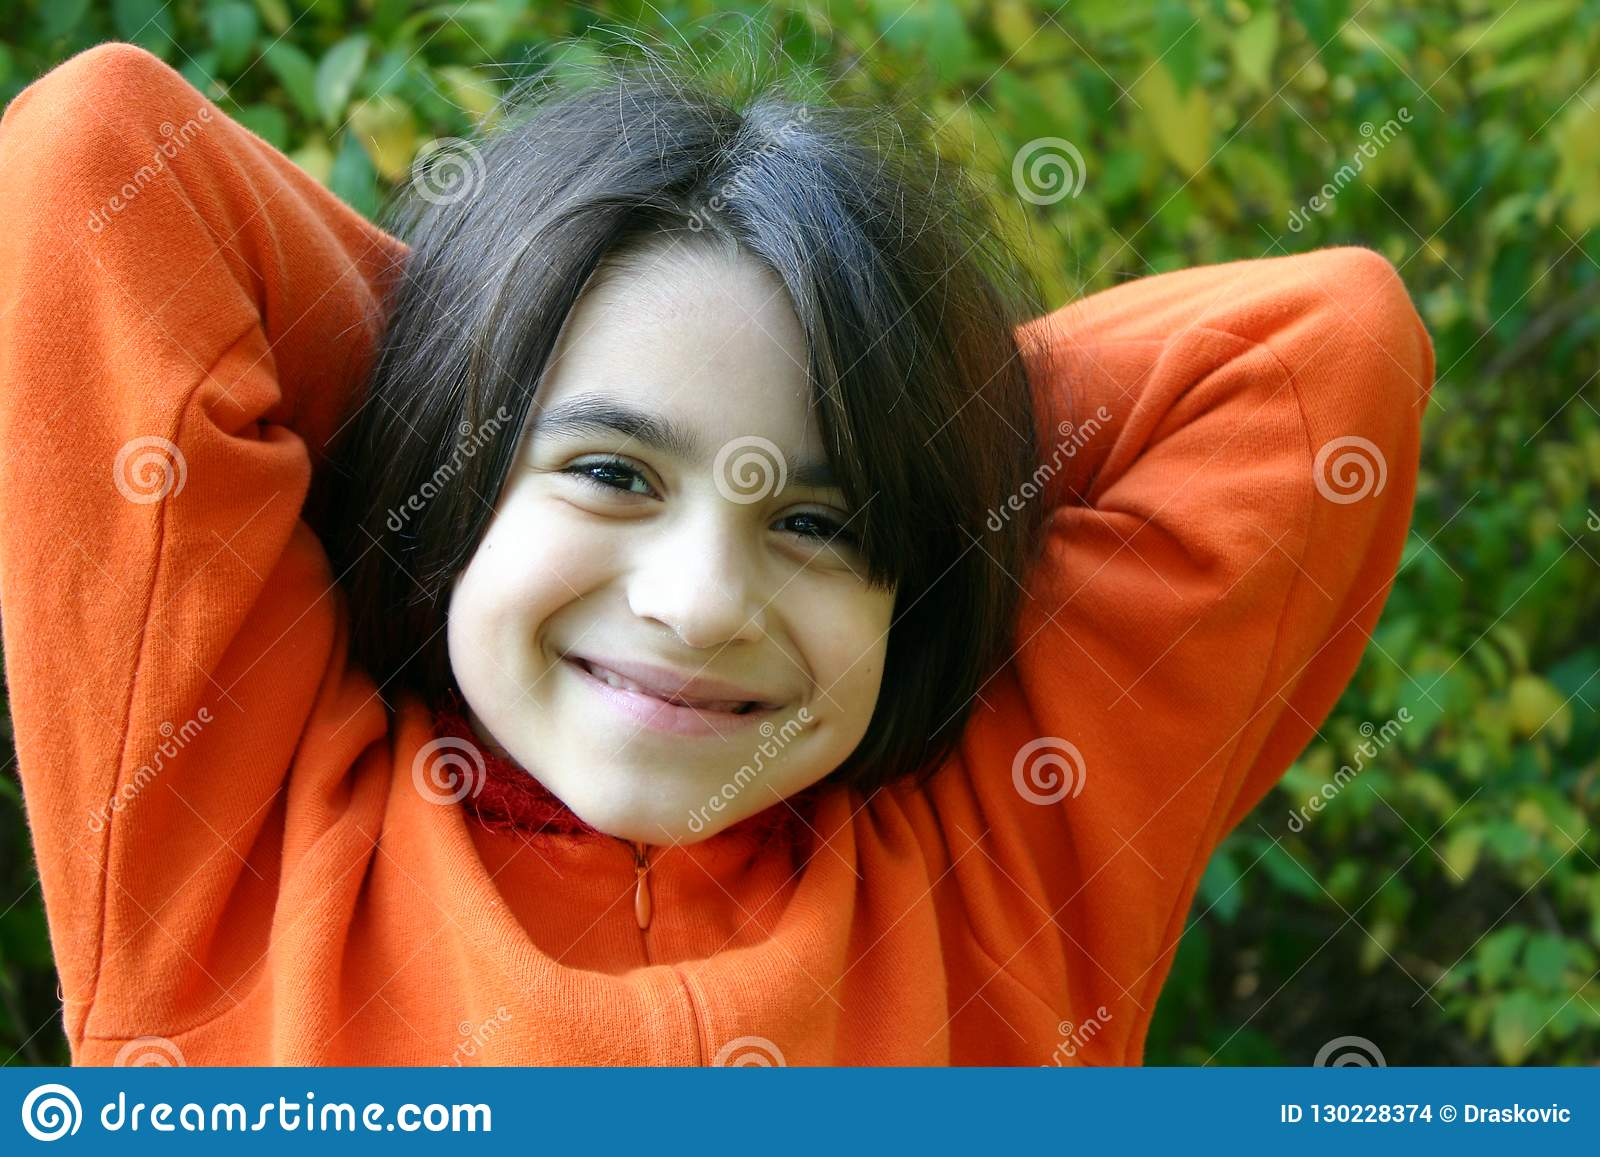 Charming young girl with orange jacket